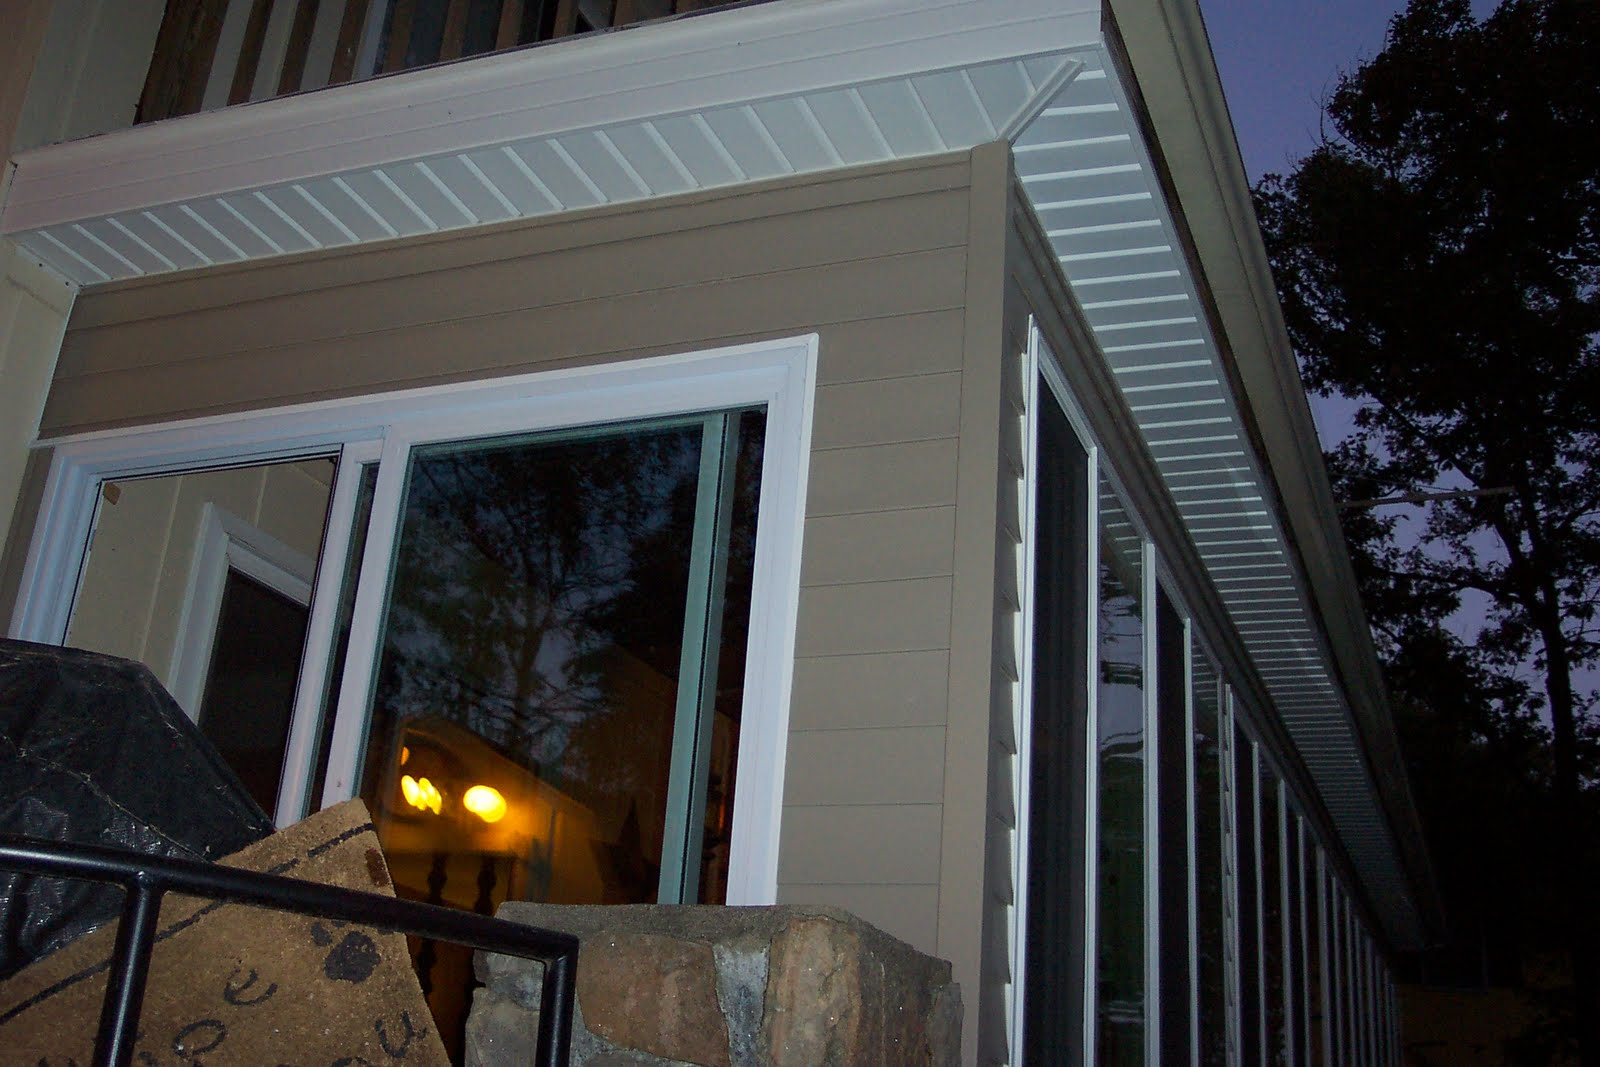 Gregg S Doghouse Lake House Porch Addition Step Two